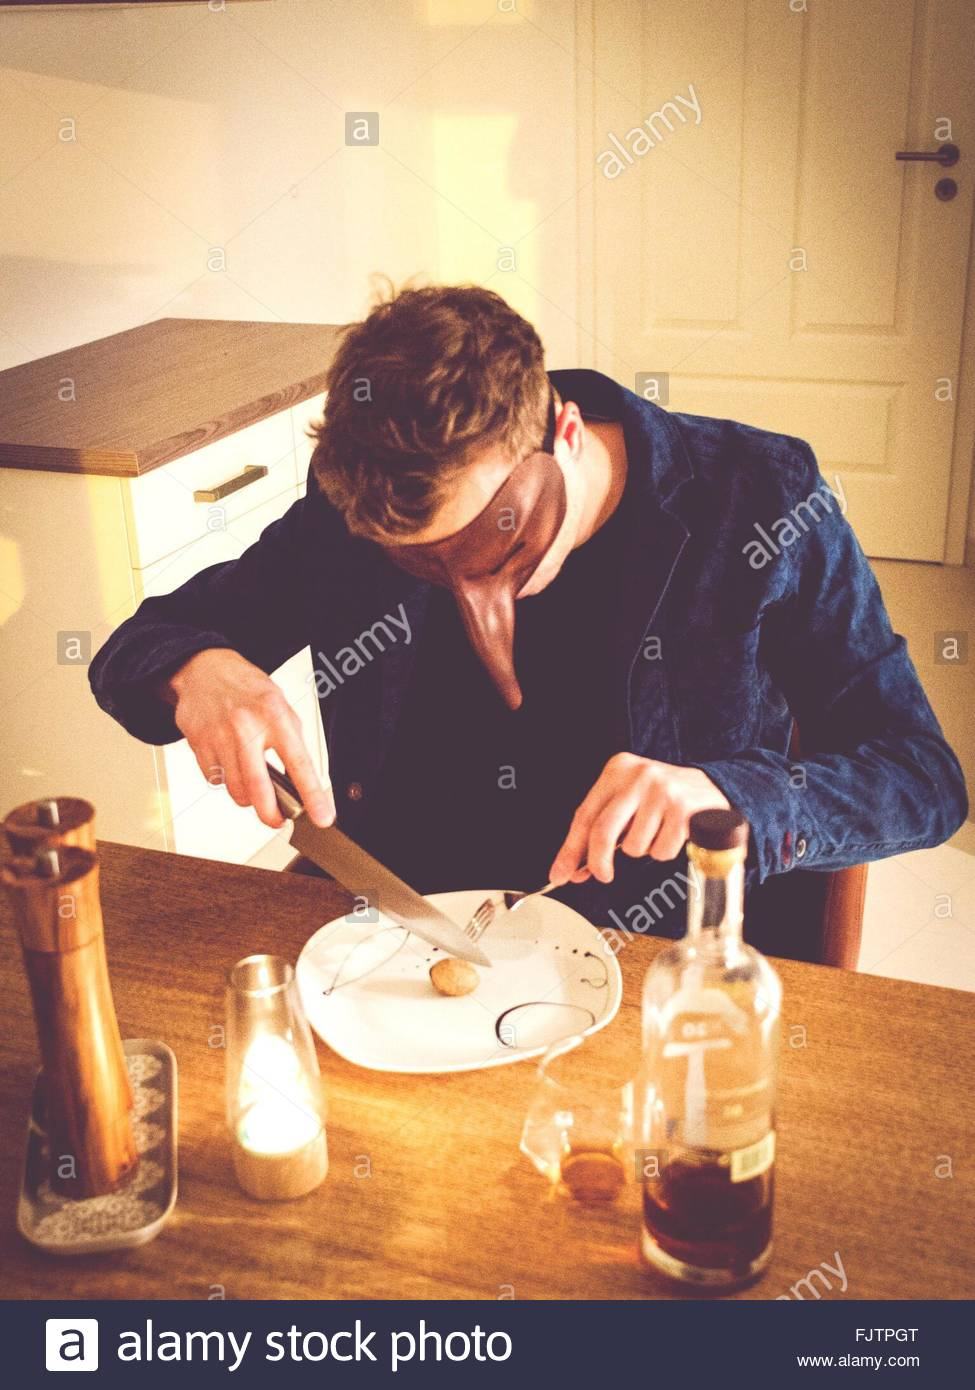 Man With Mask Eating Breakfast At Home Stock Photo